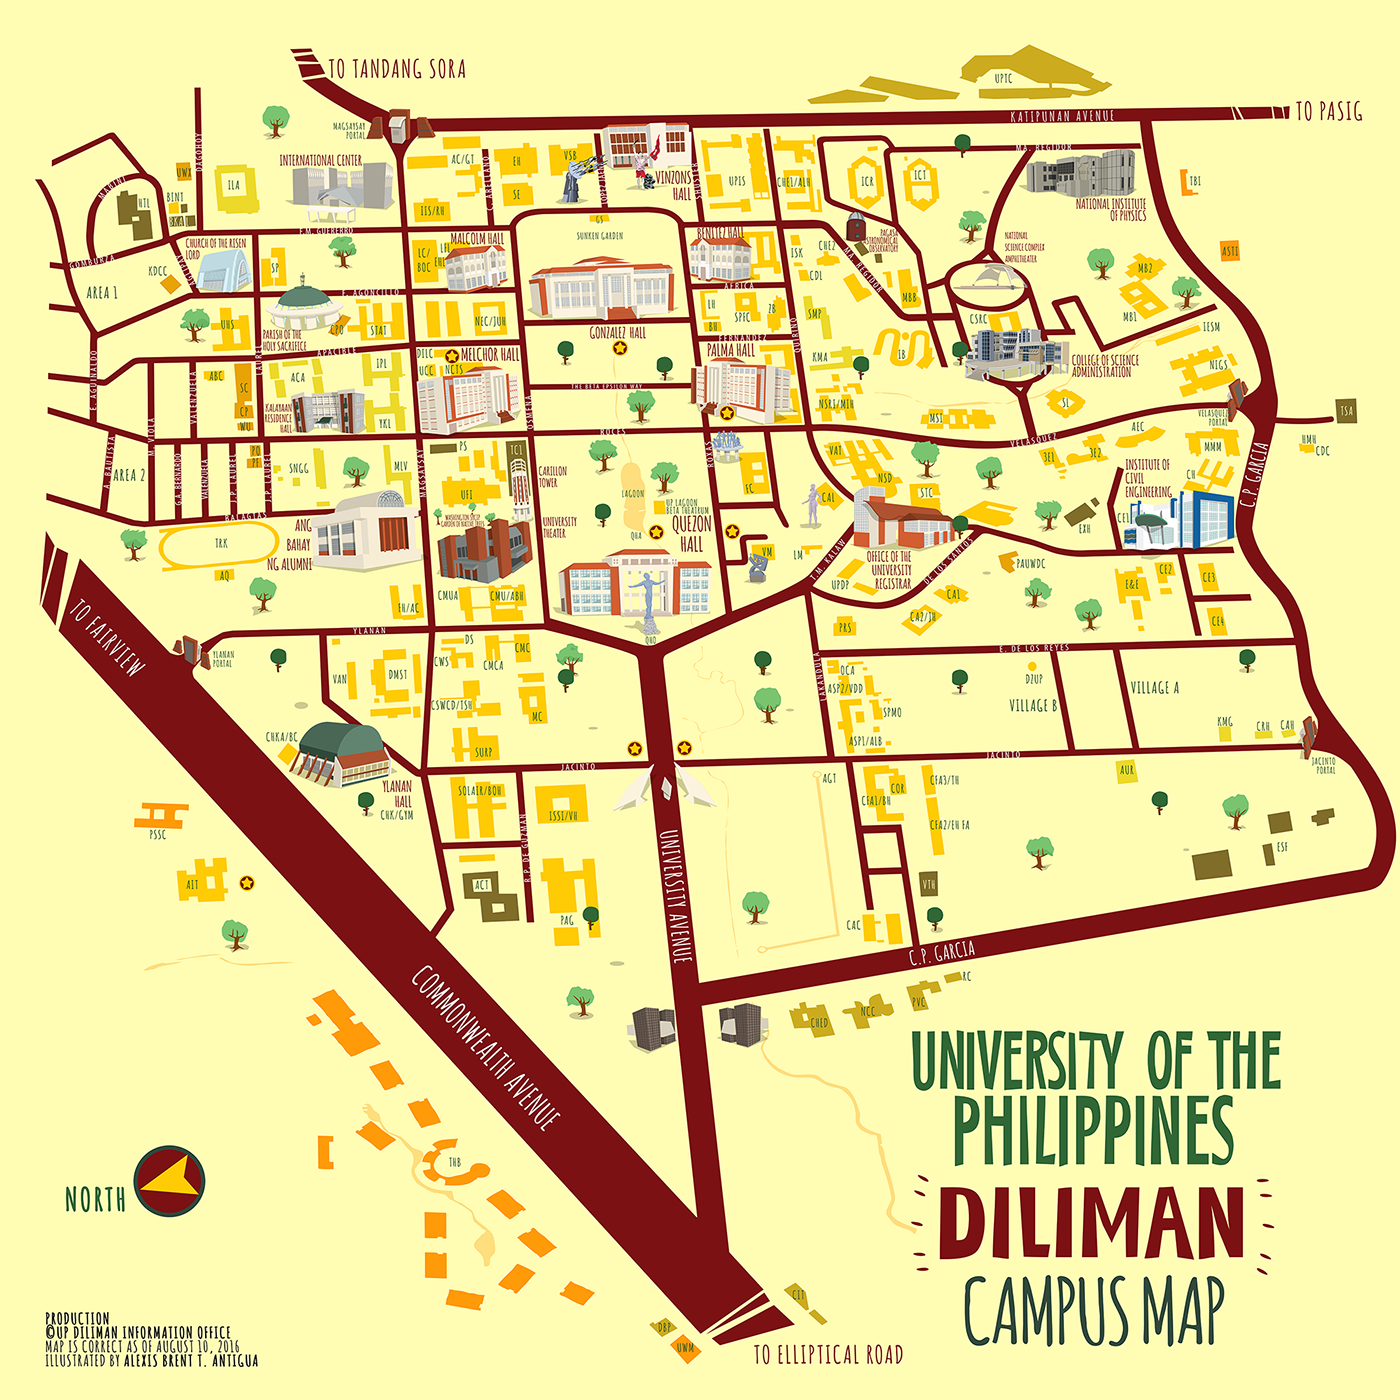 Pin by Eujin on Illustrated map | Campus map, Map, Word map